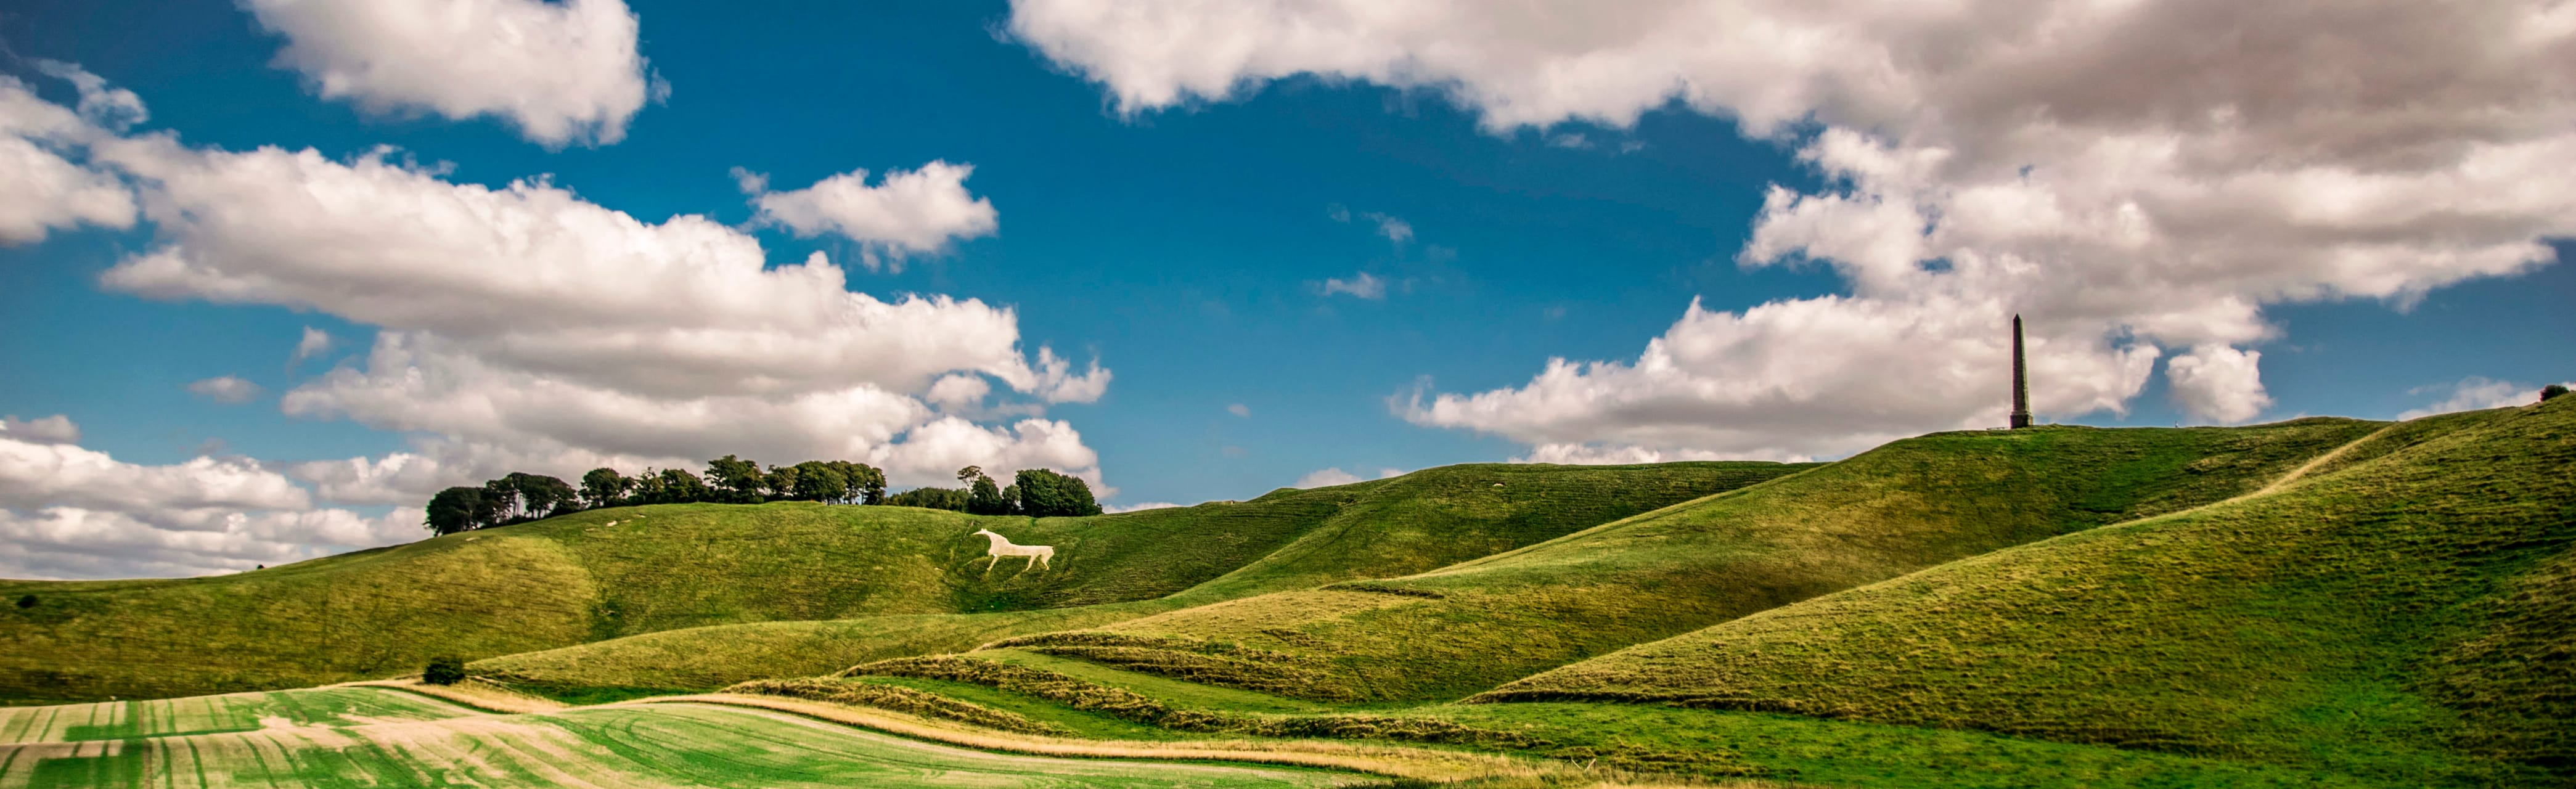 Wiltshire cover image